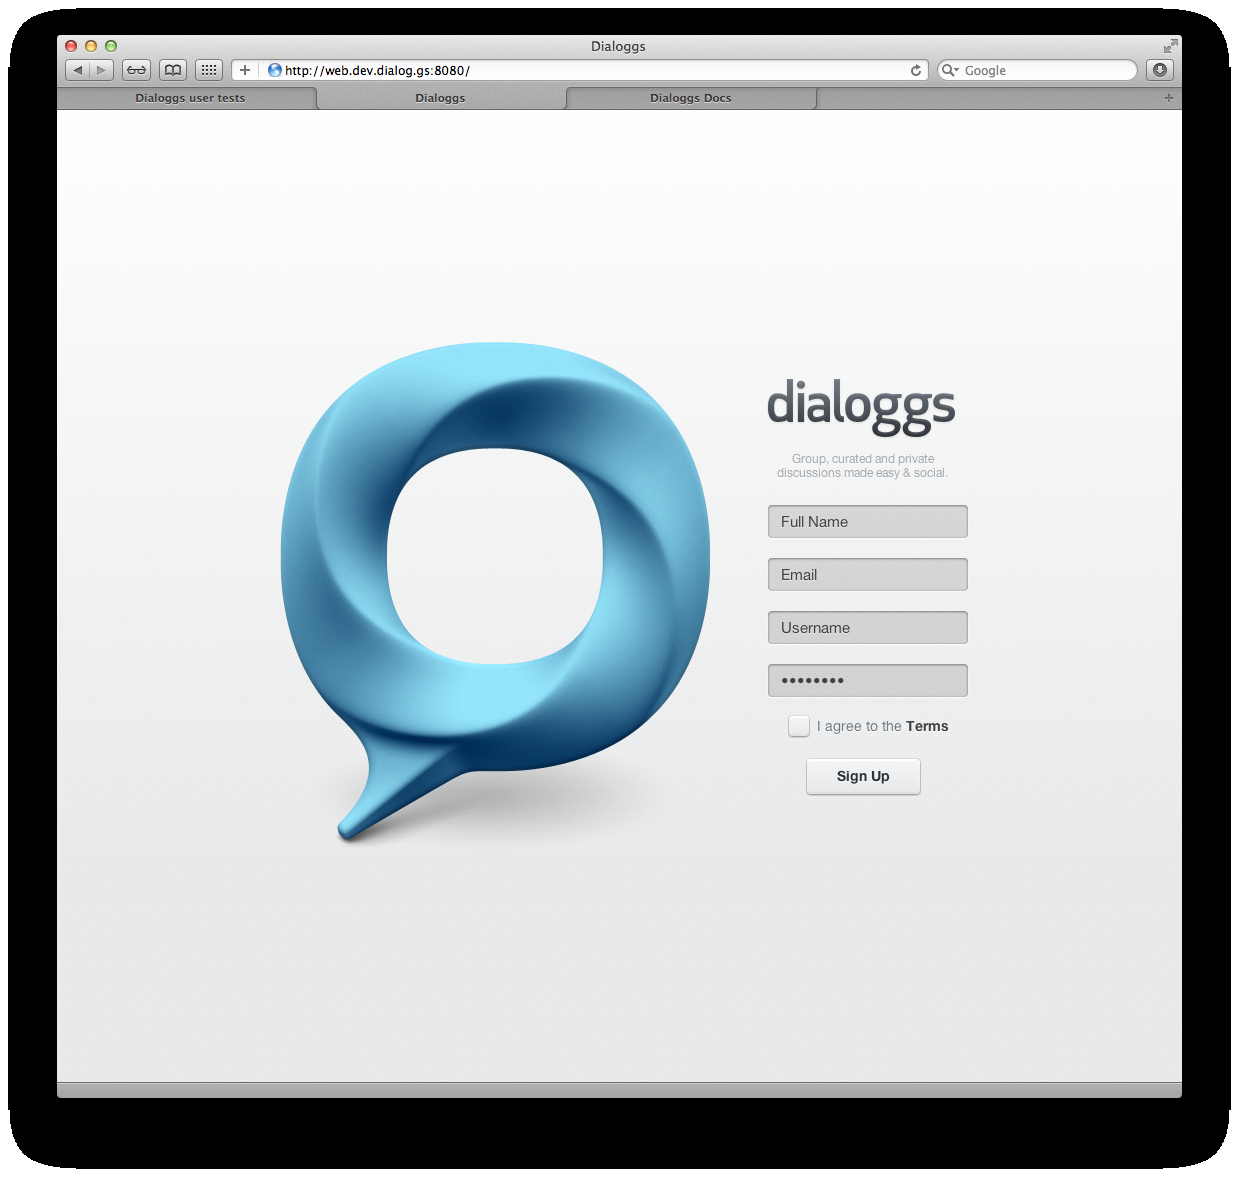 dialoggs-bigger.png by Drew Wilson